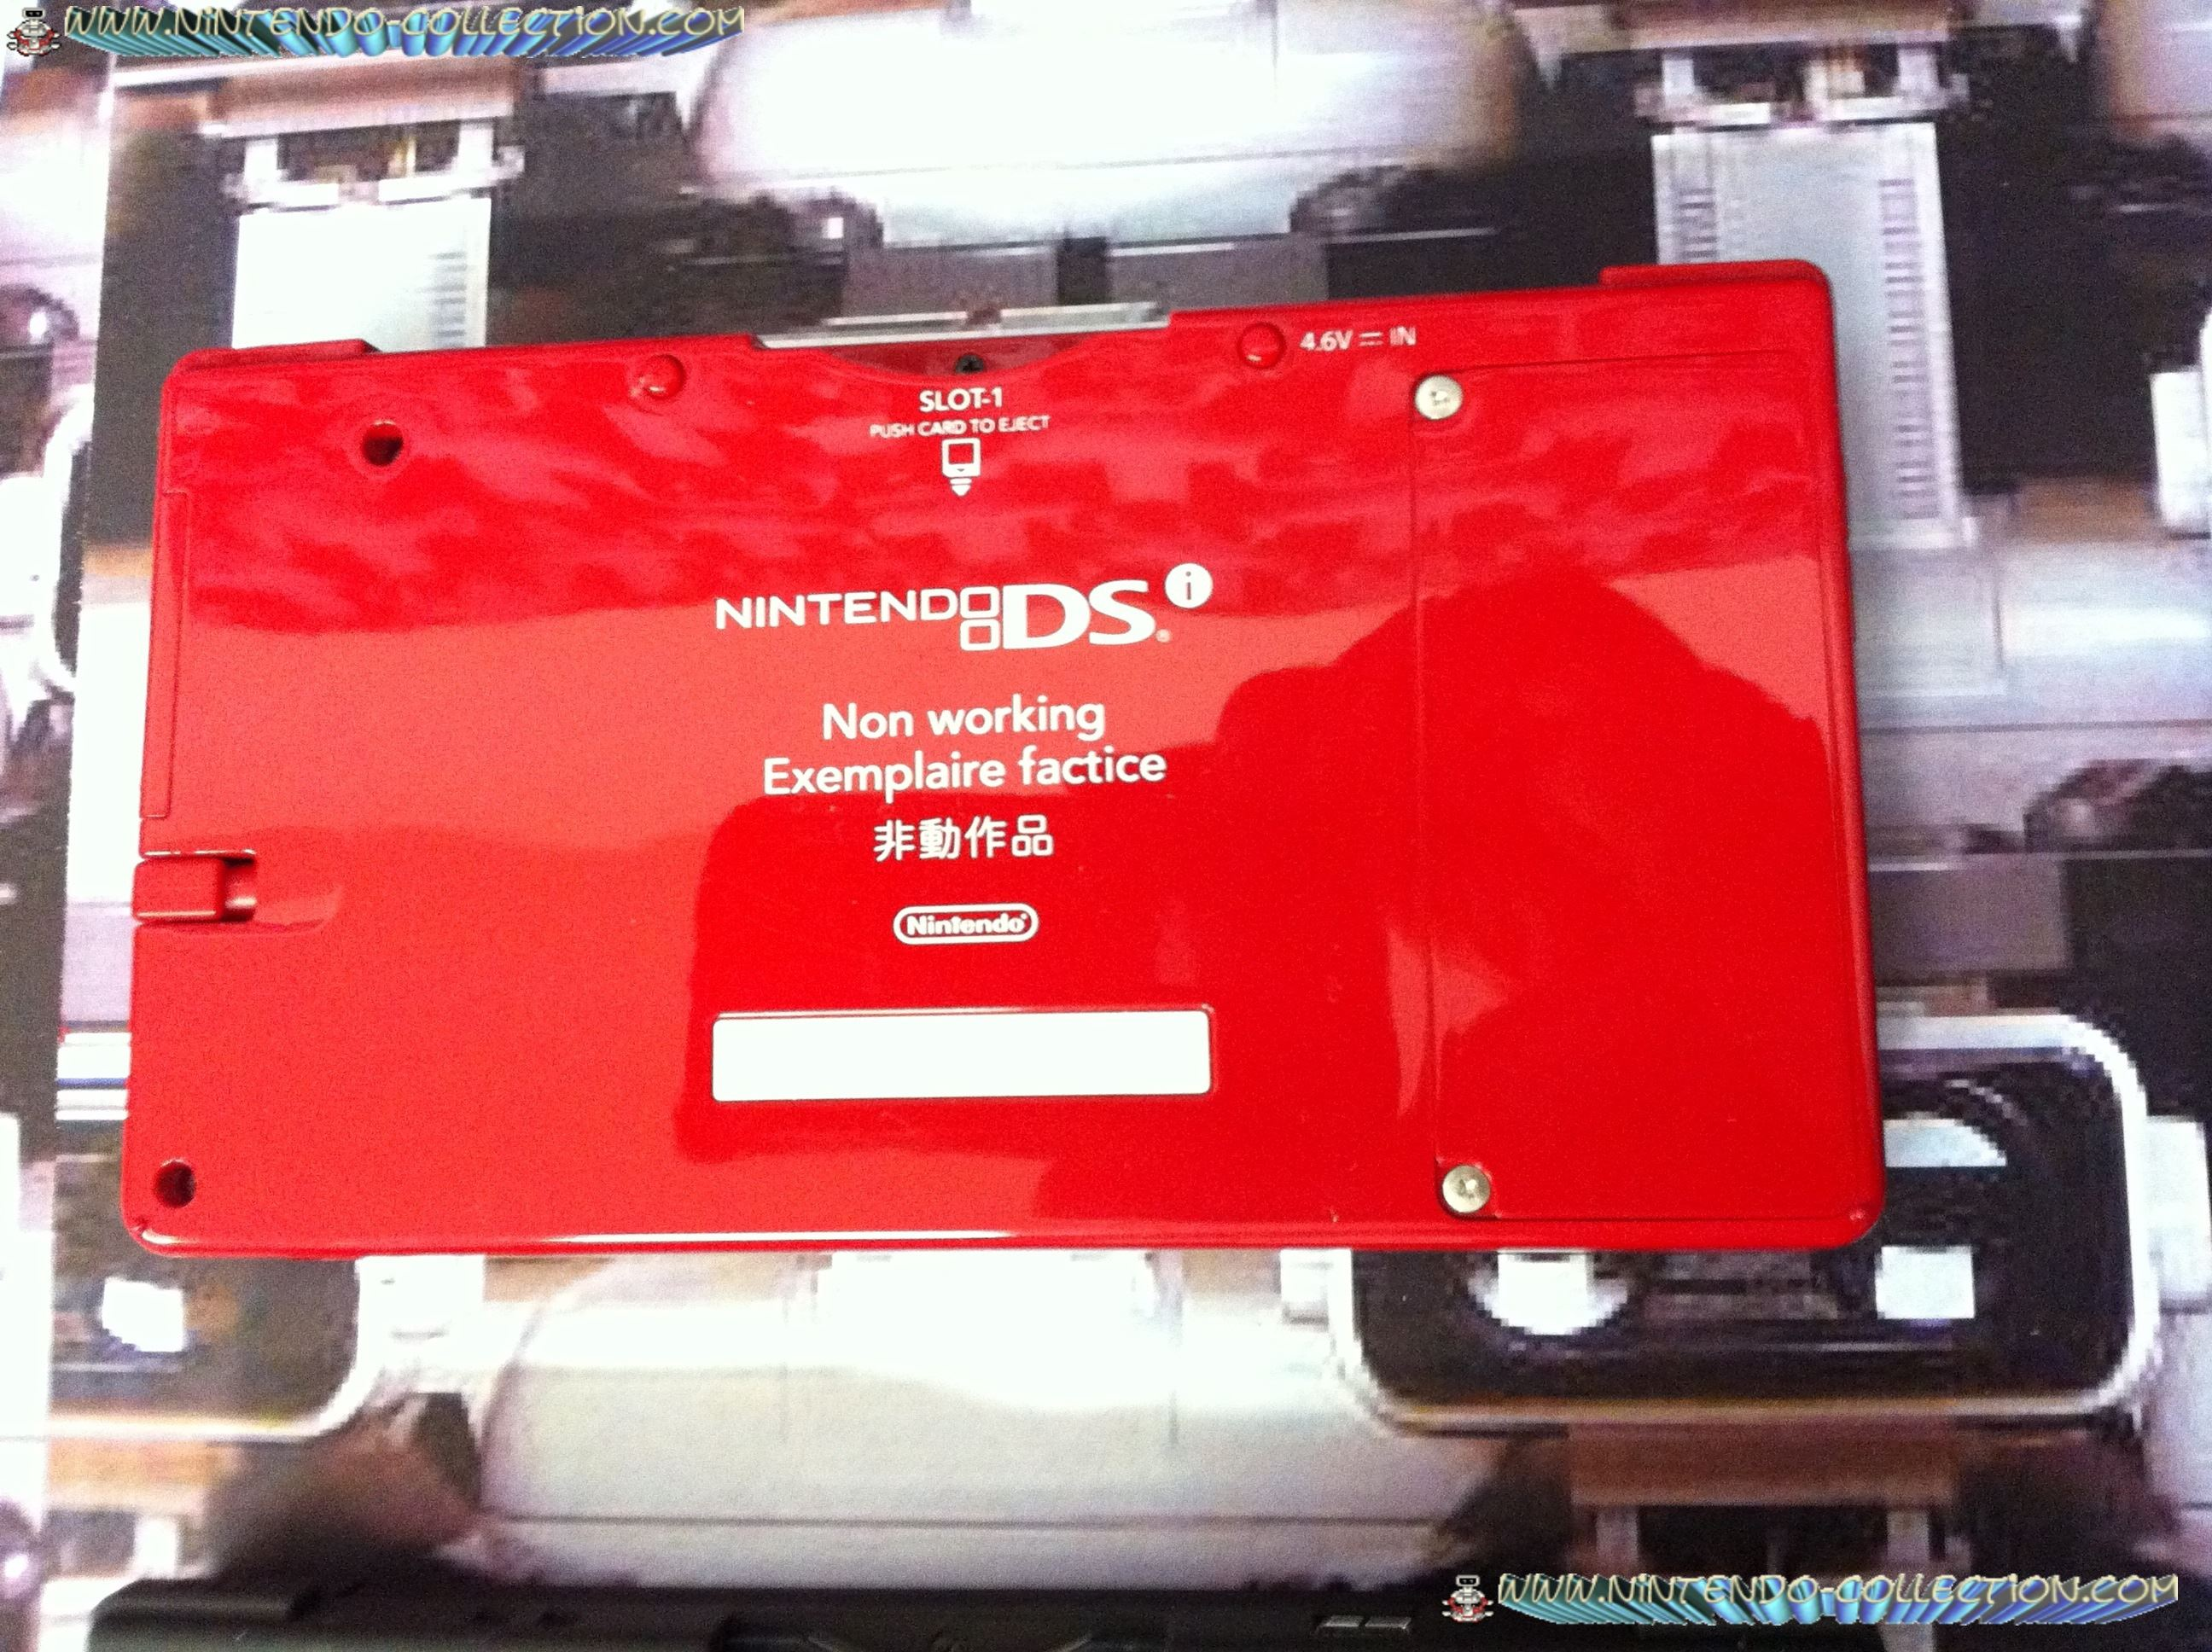 www.nintendo-collection.com - DSi Factice Non-Working Unit Rouge Red